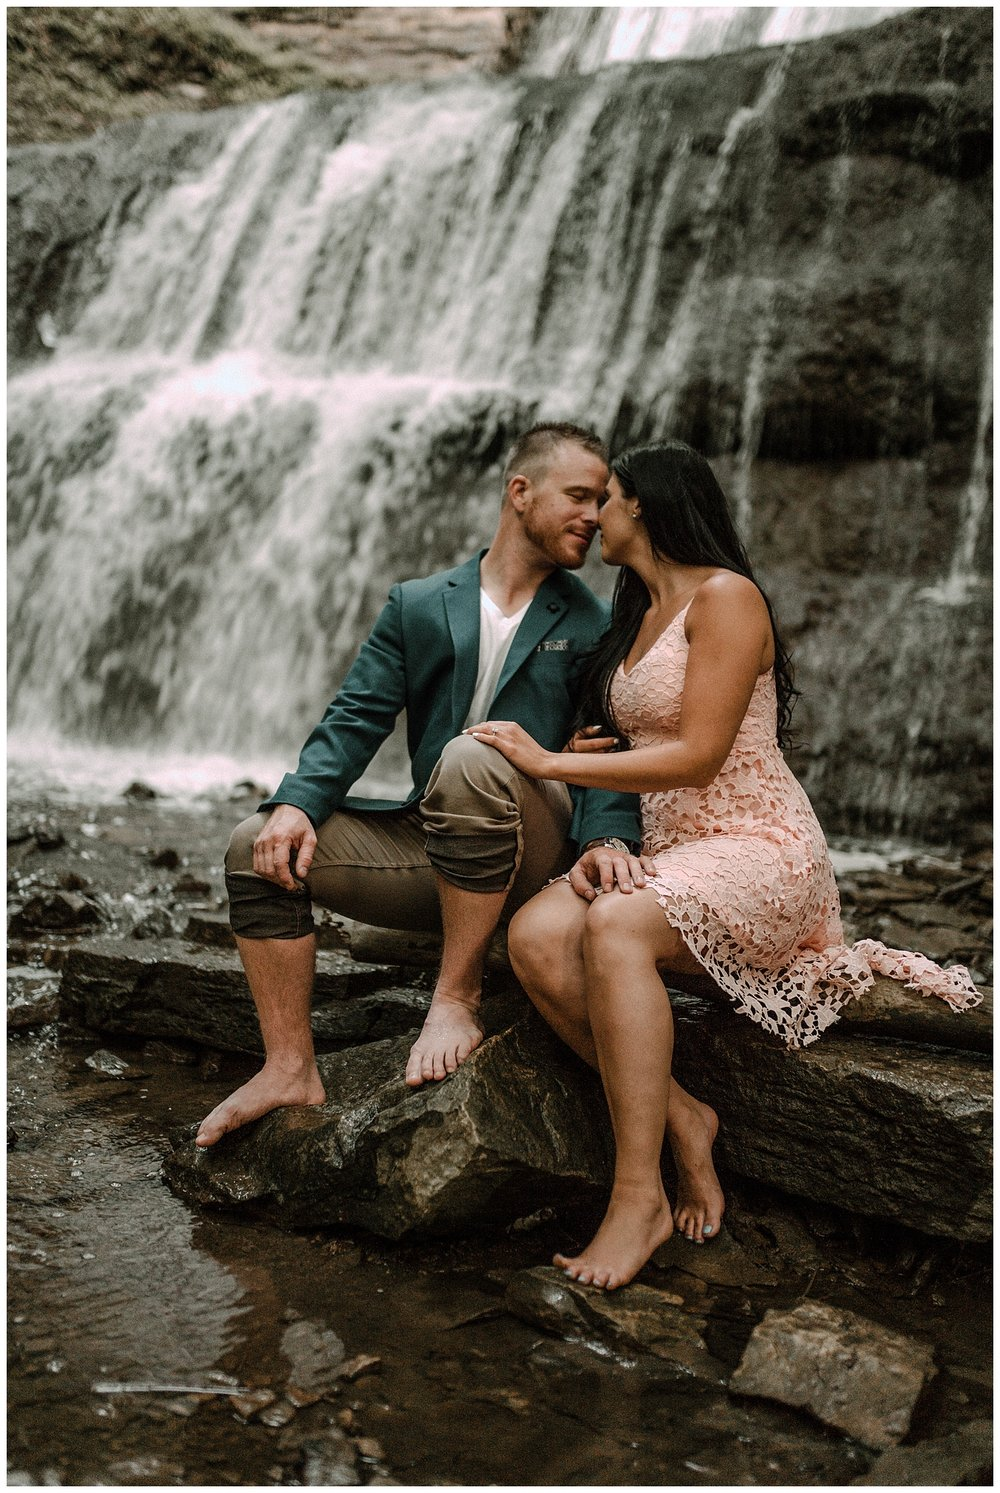 katie marie photography - dundas hamilton waterfall engagement photoshoot - wedding photographer_0072.jpg